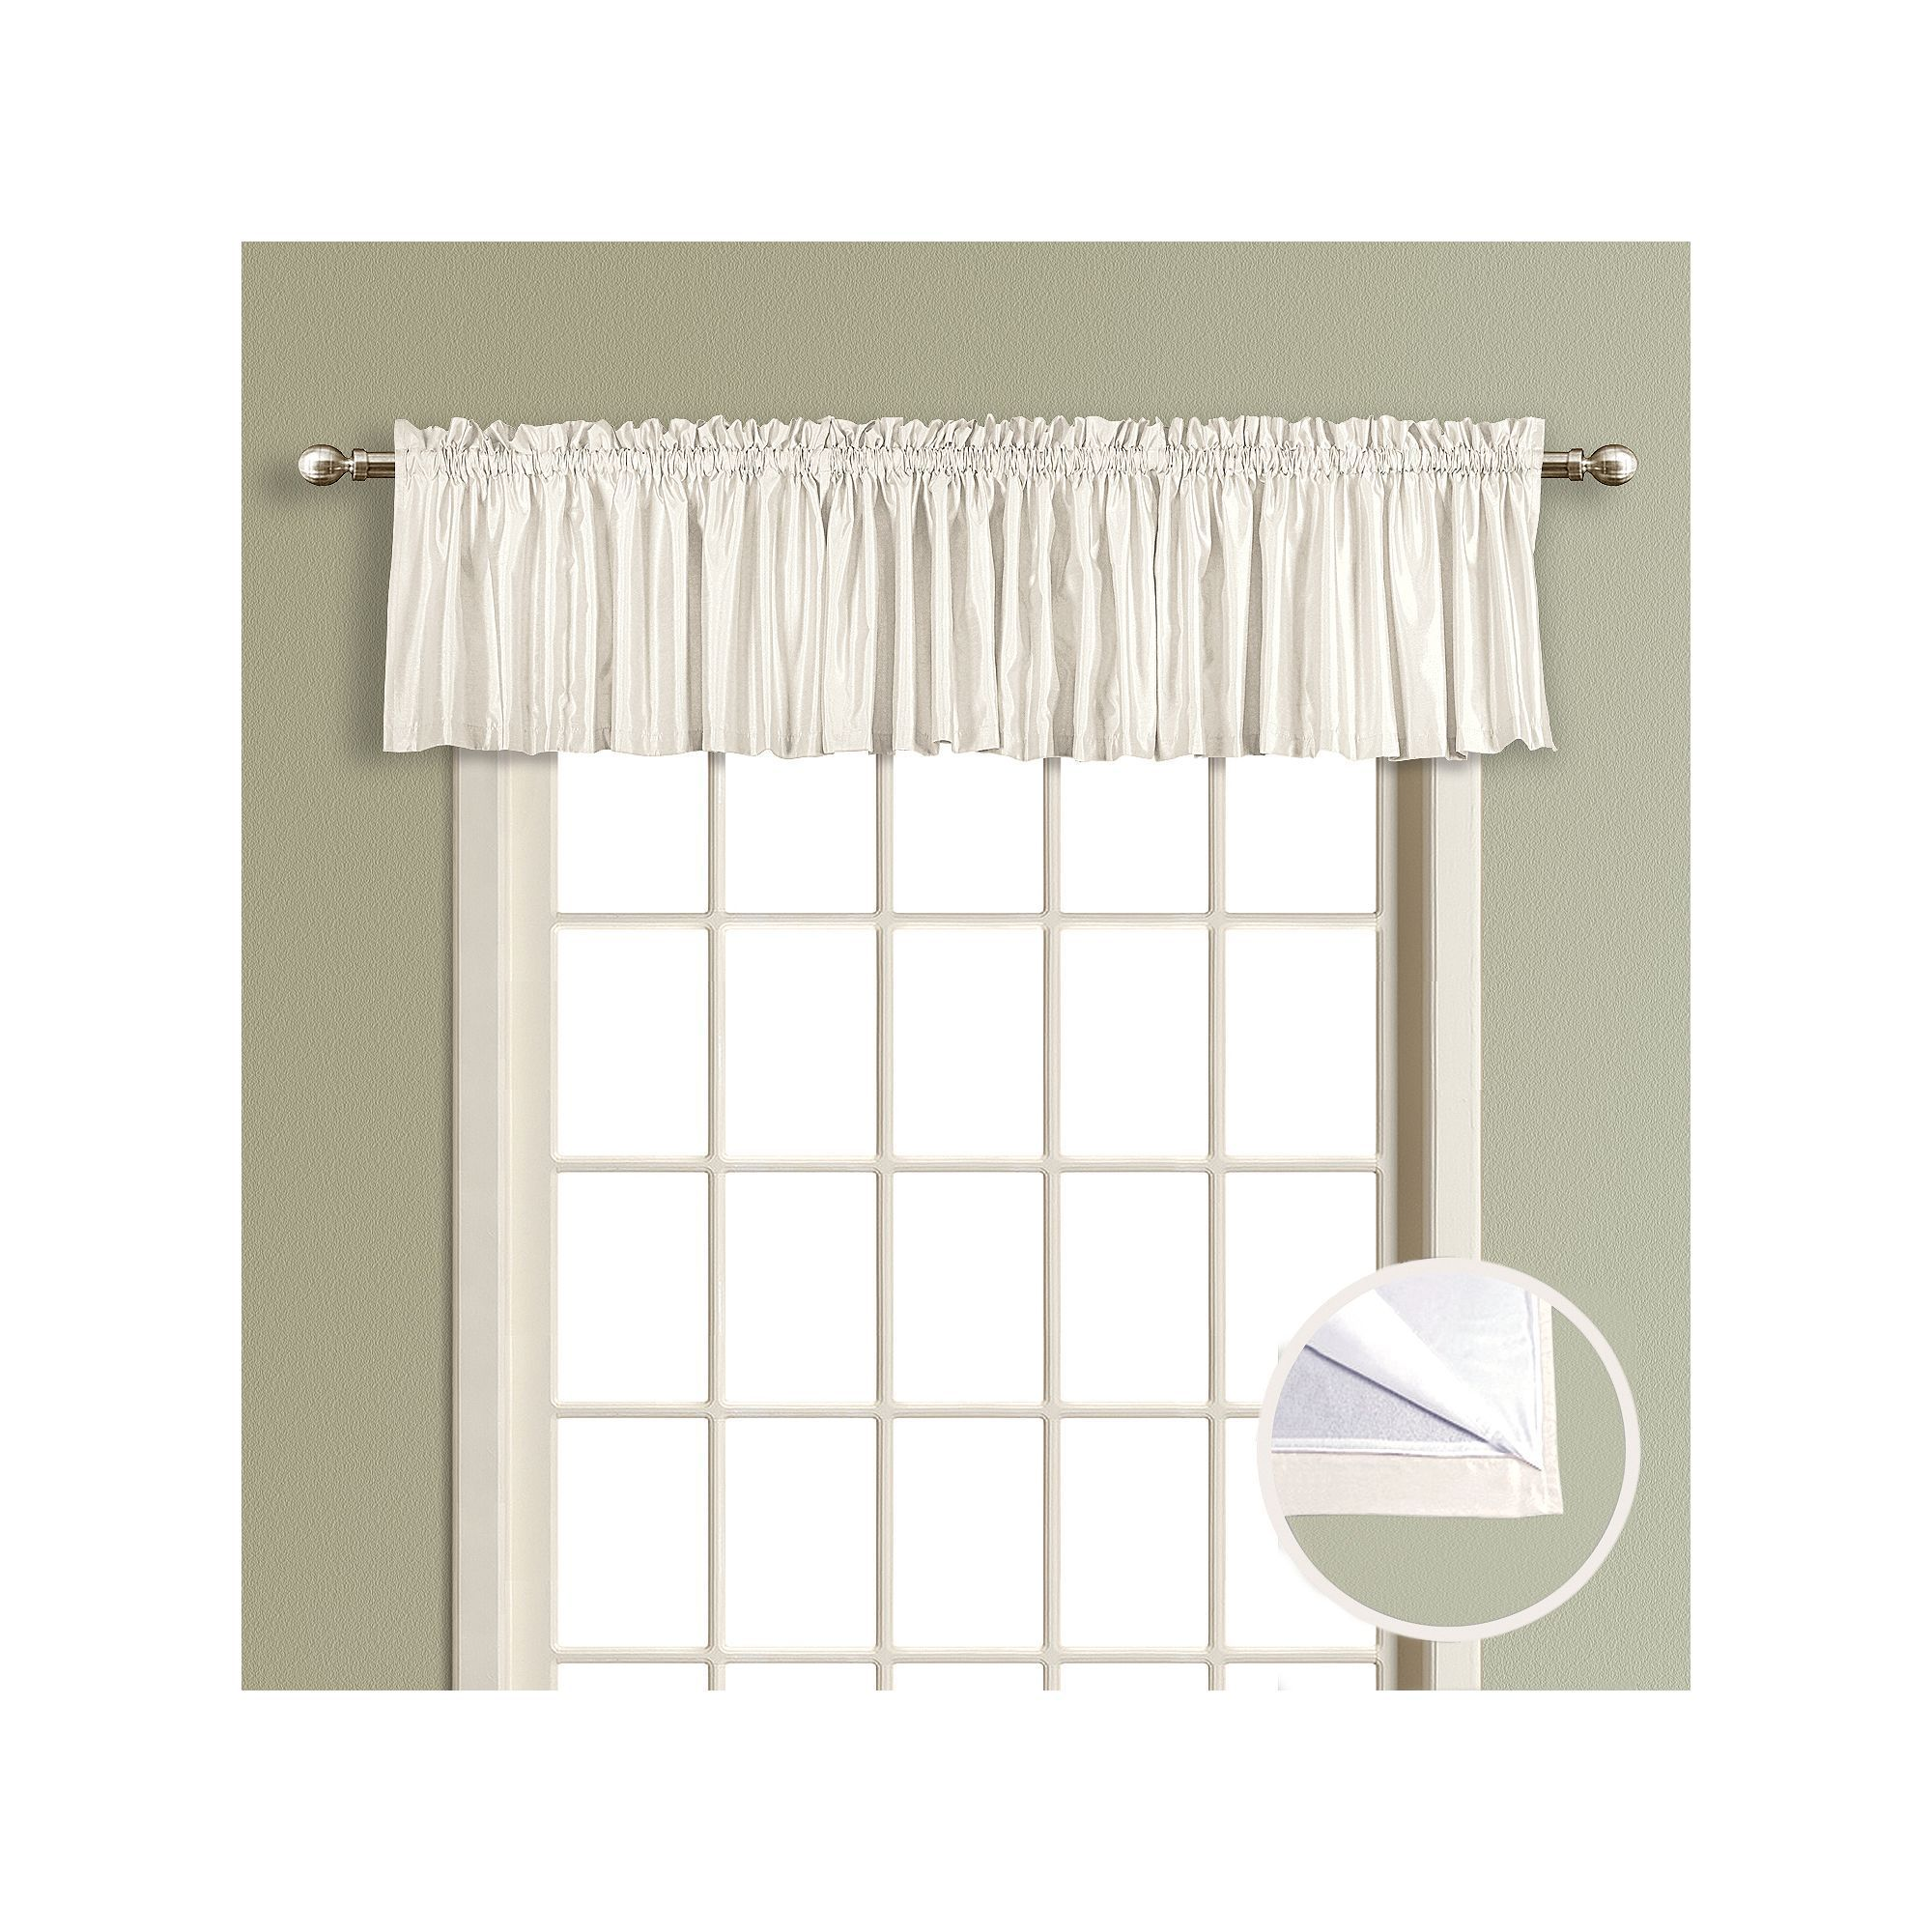 United Curtain Co Lincoln Lined Window Valance 54 X 16